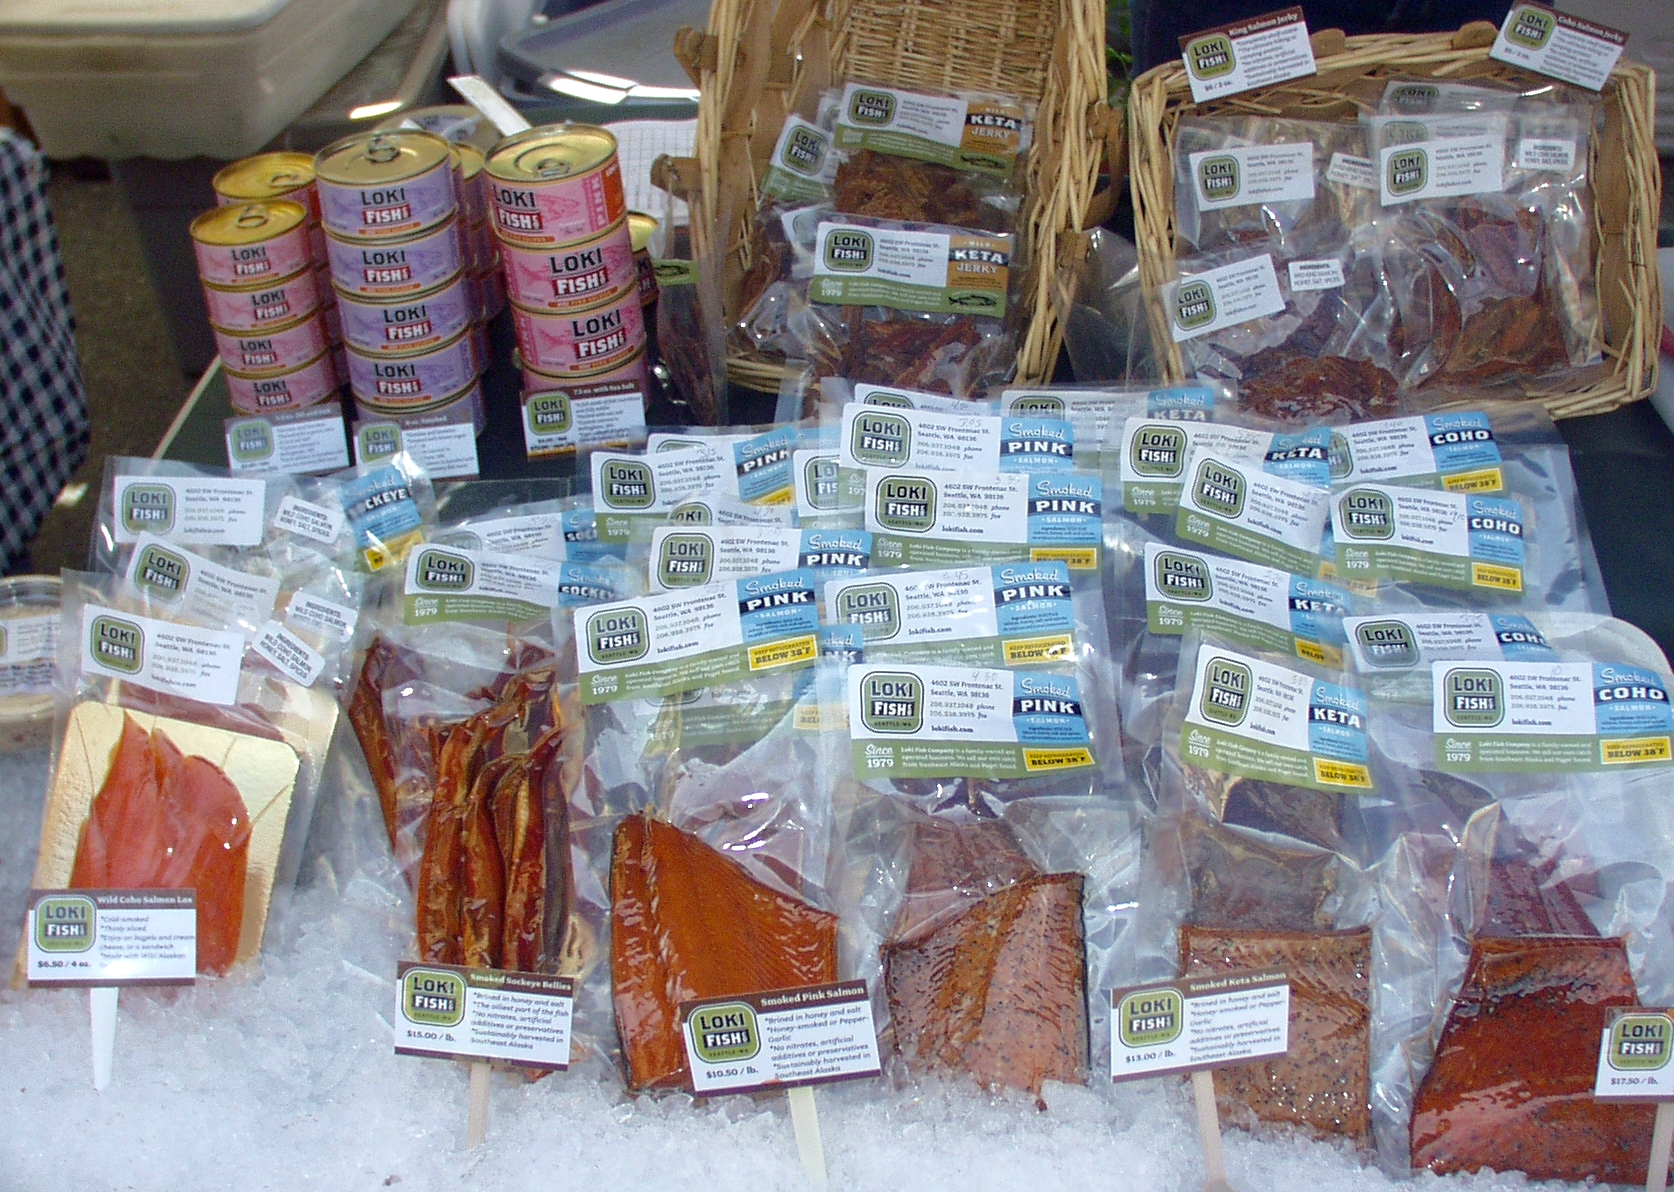 Loki Fish offers a wide variety of wild salmon products. Photo copyright 2009 by Zachary D. Lyons.